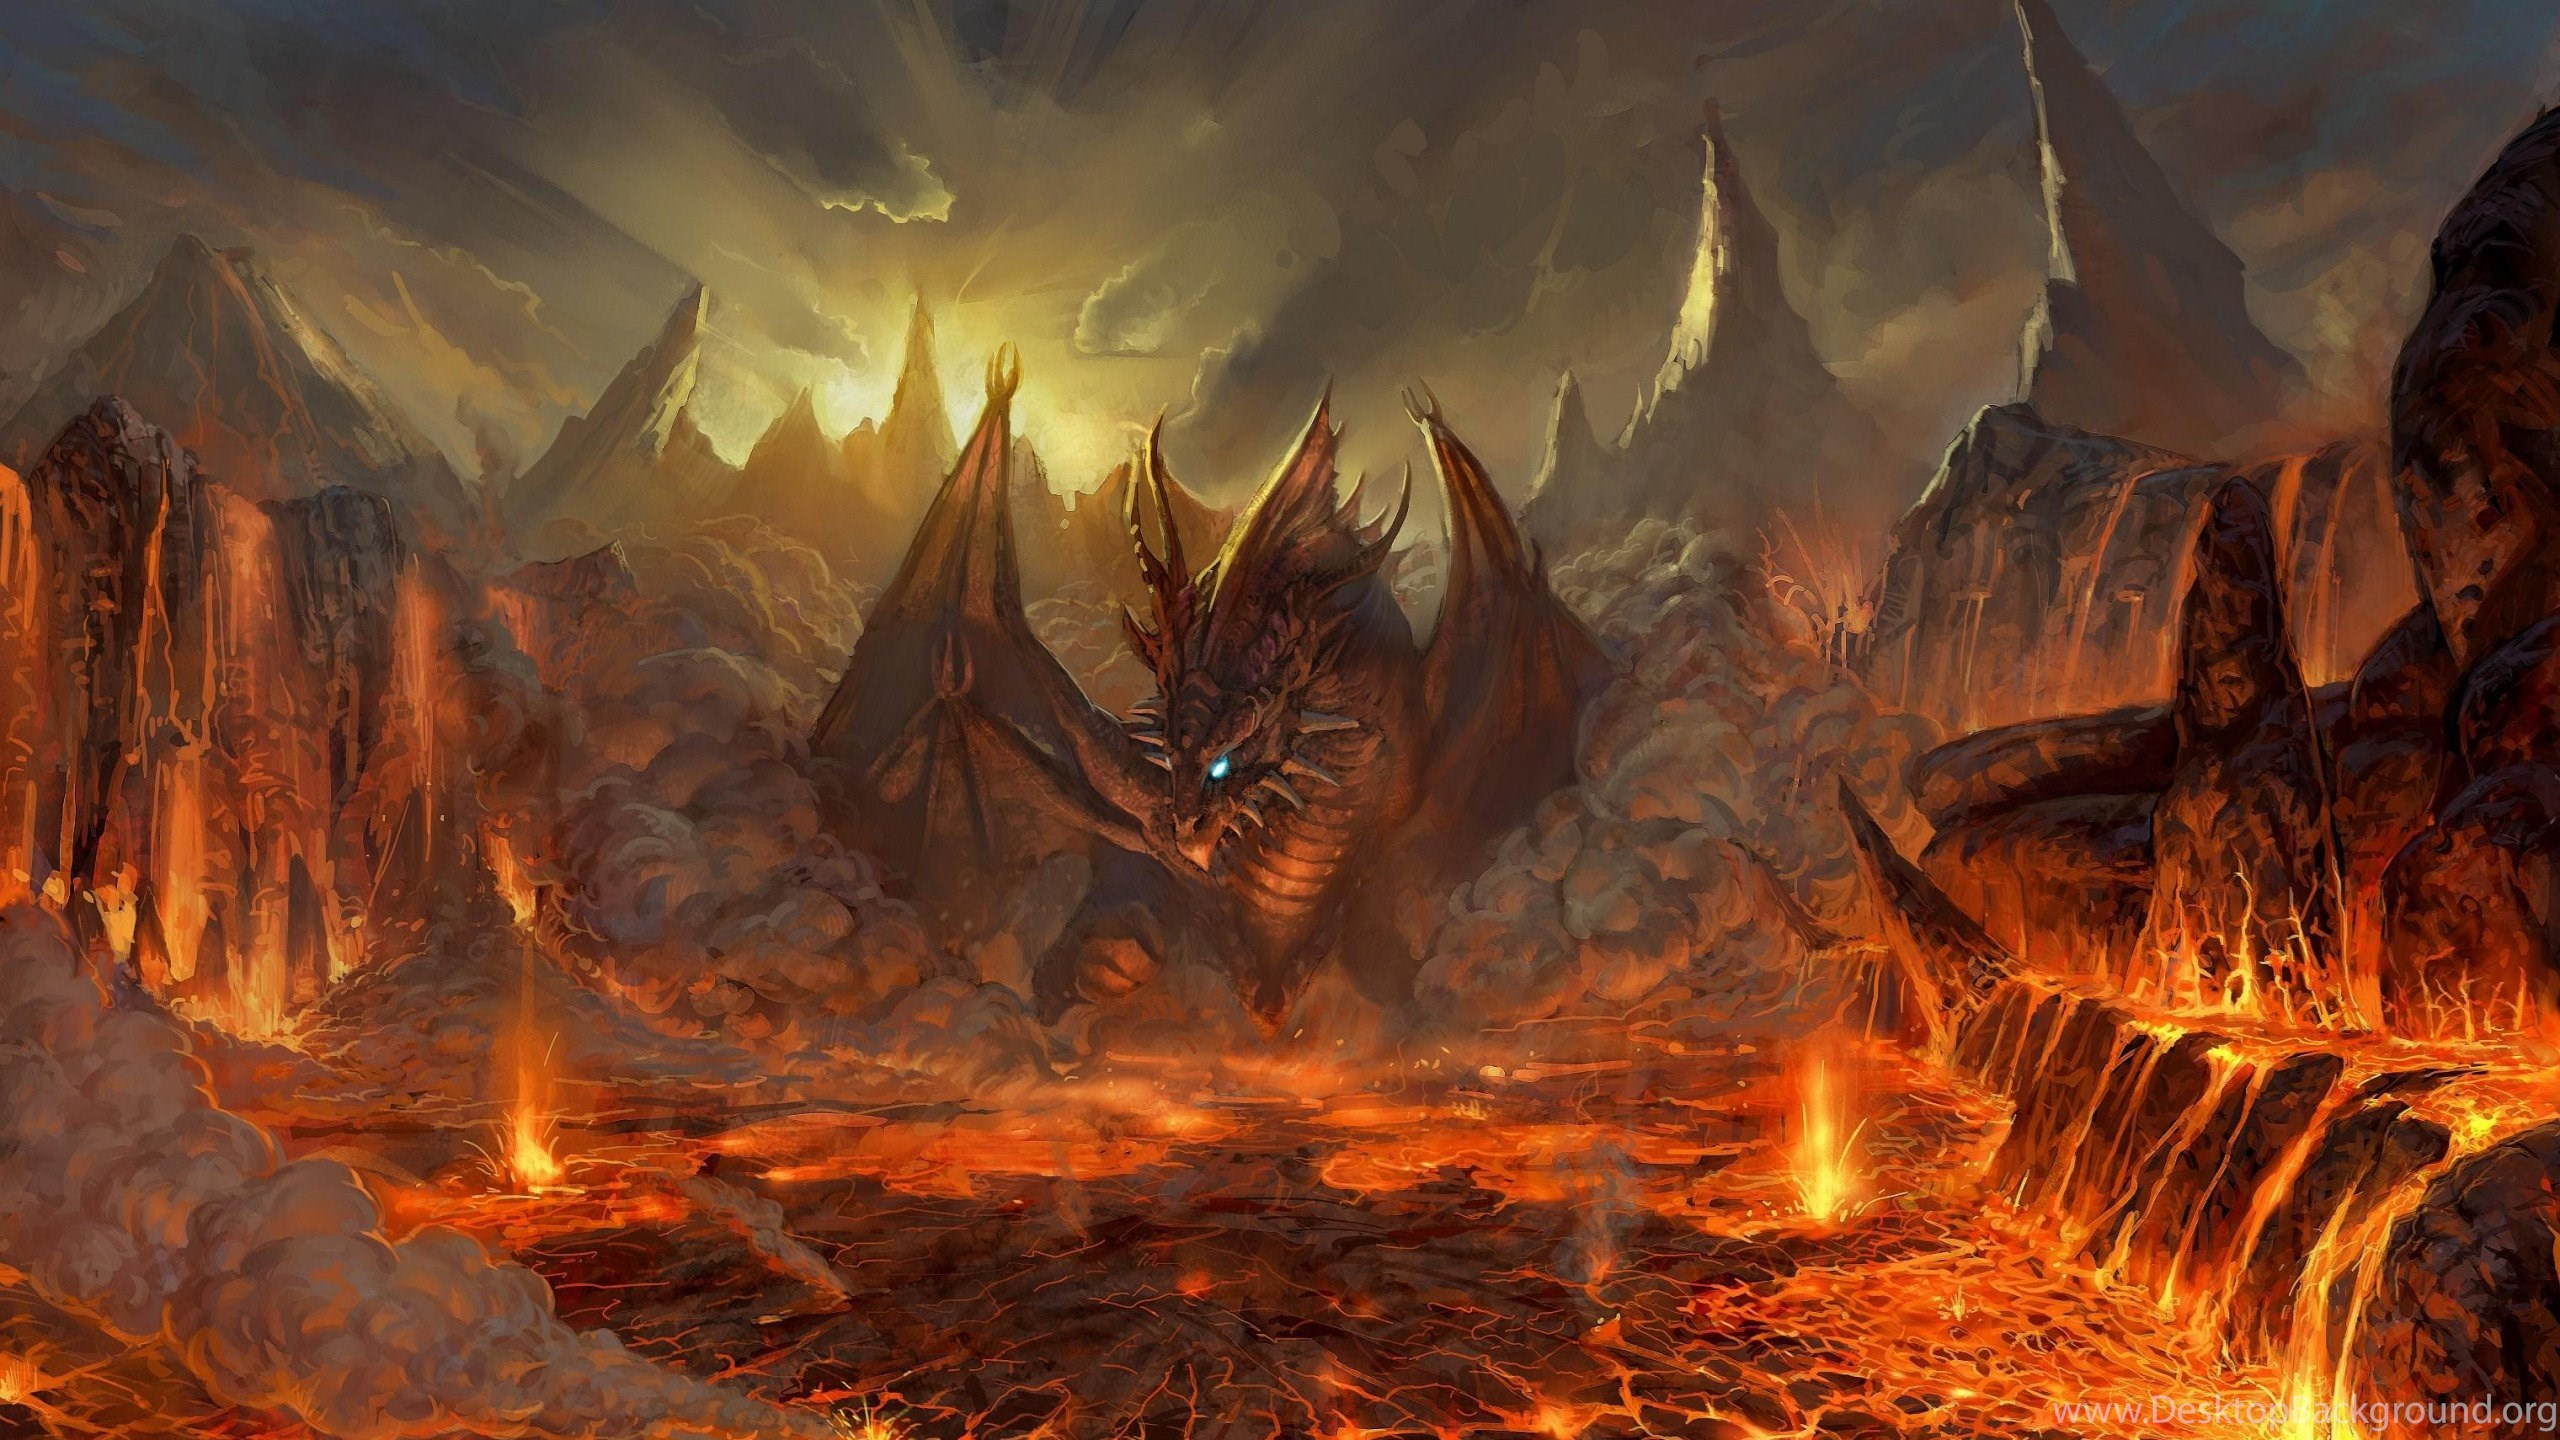 Fire Dragon Fantasy 2560x1440 Hd Wallpapers And Free Stock Photo Desktop Background